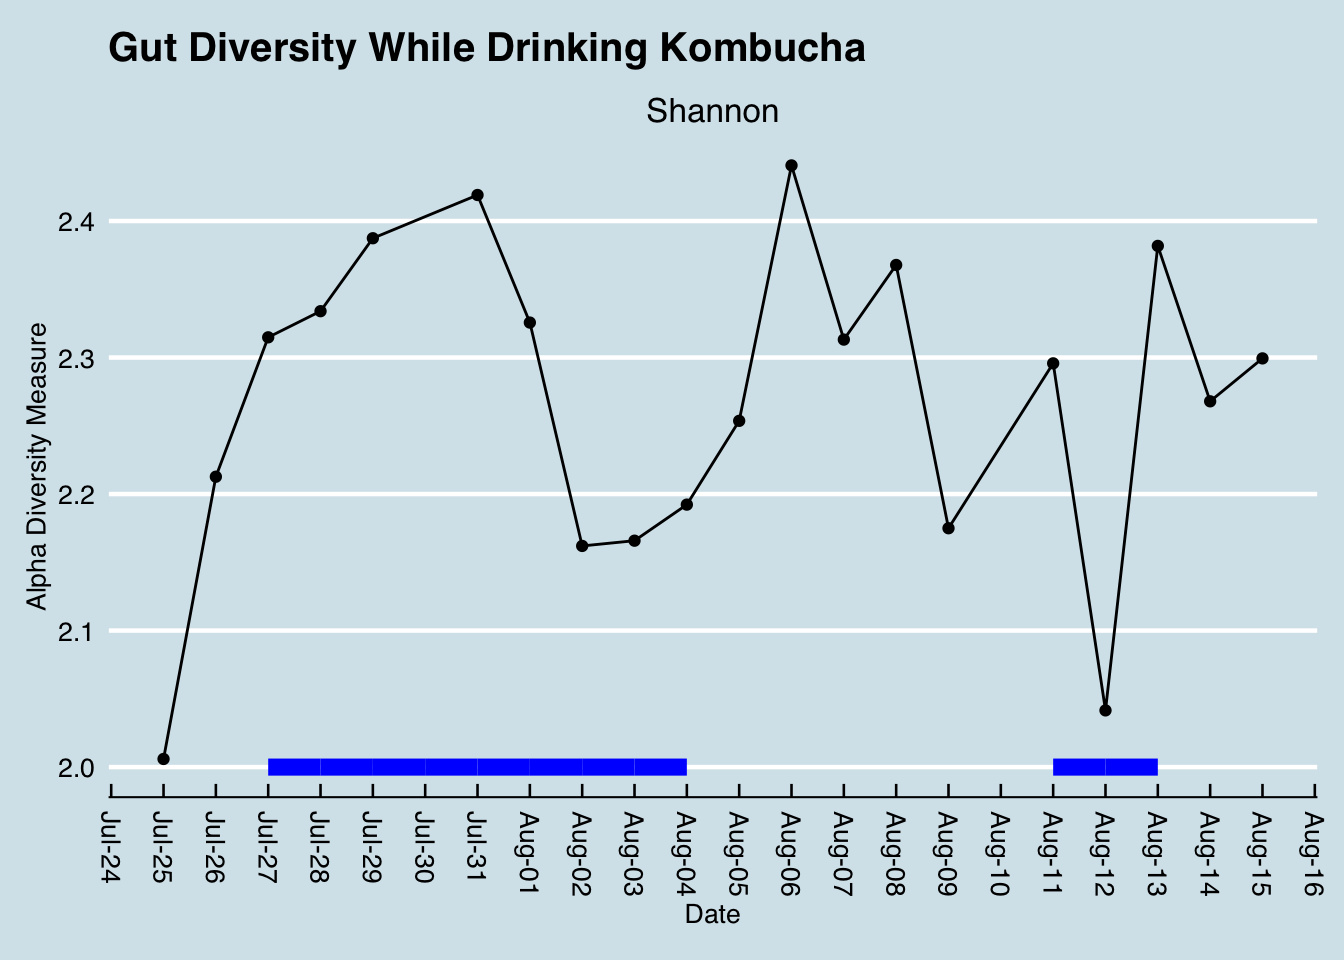 How my overall family-level diversity changes while drinking kombucha. I drank 6 full servings on each of the days marked with the blue line.